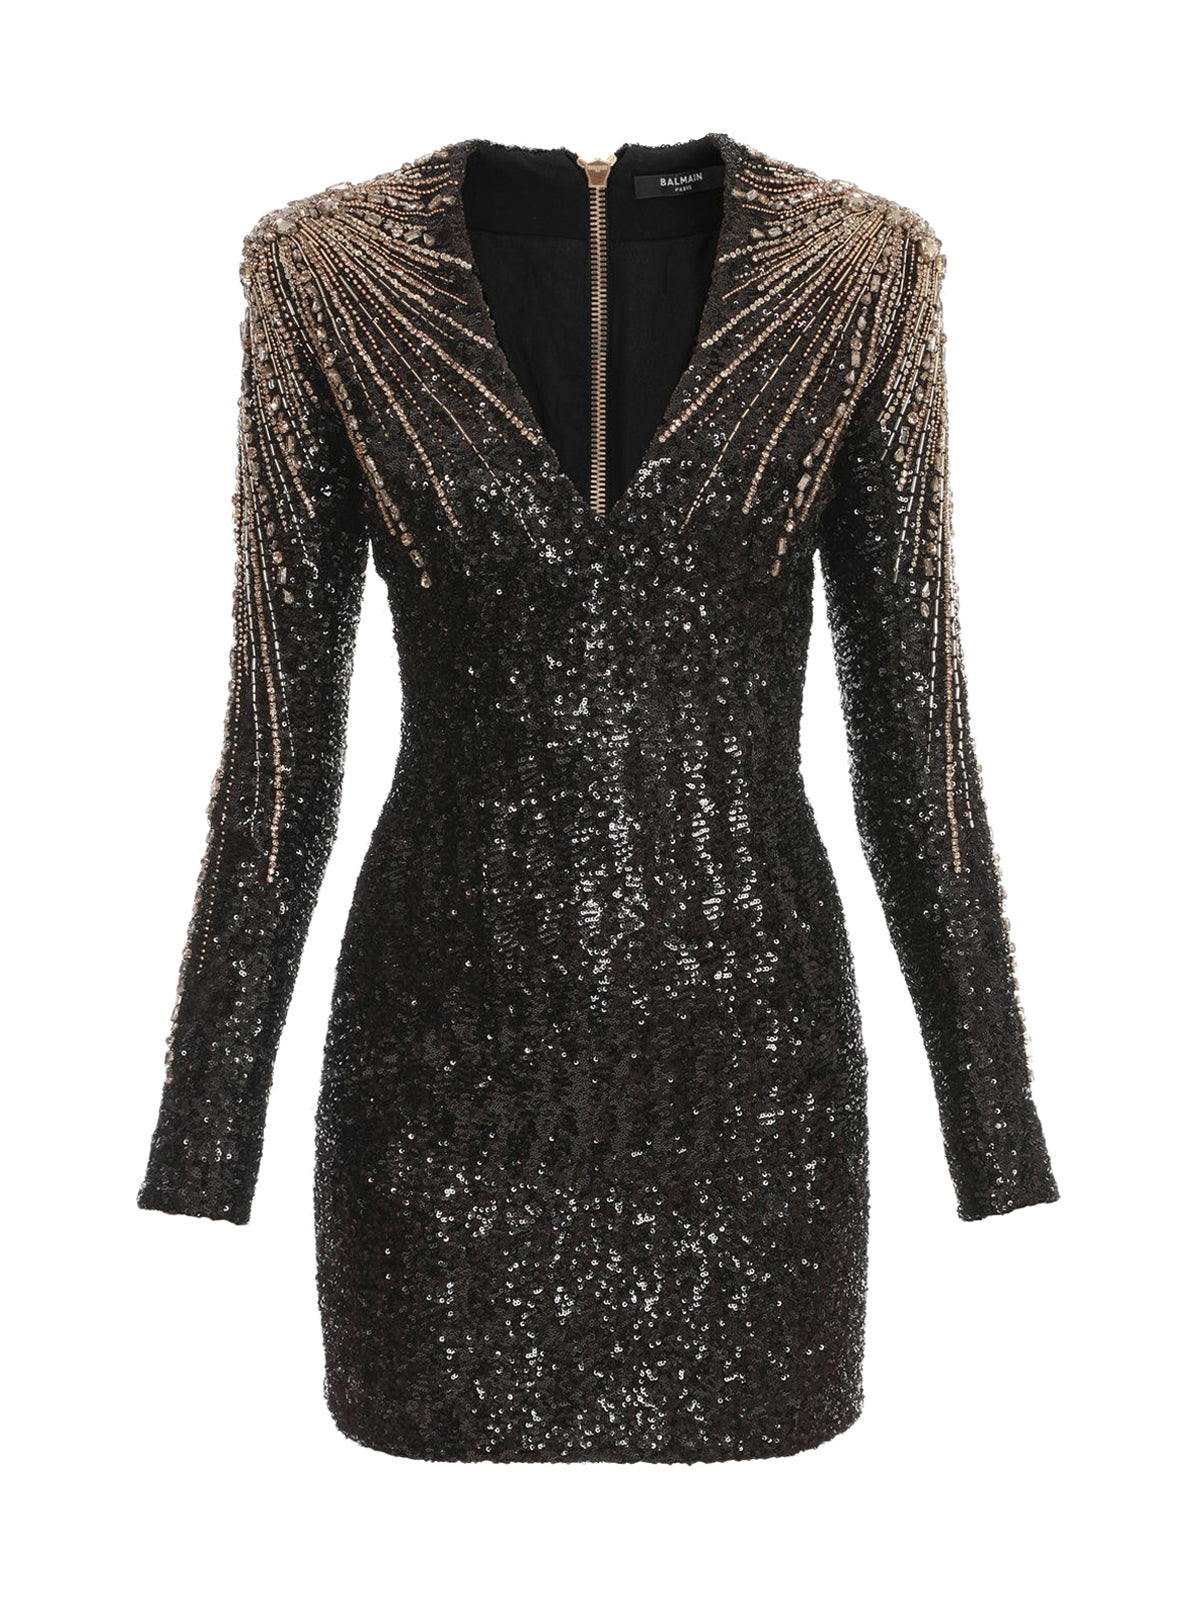 Short black, gold and silver sequinned dress